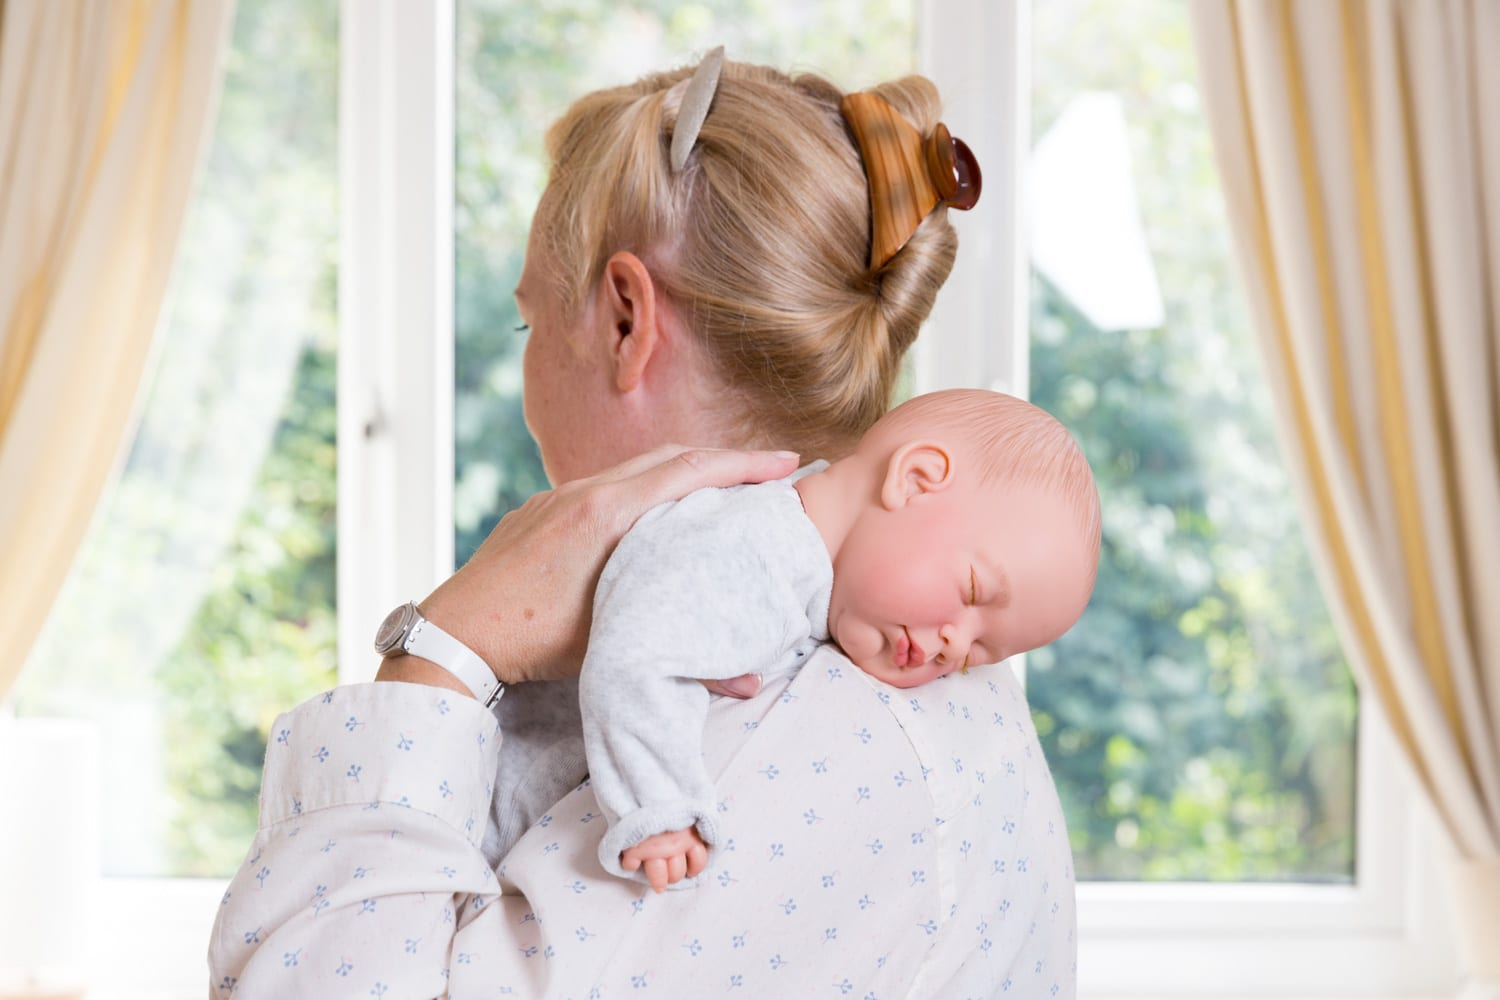 blonde woman holding a baby over her shoulder in order to wind a baby.